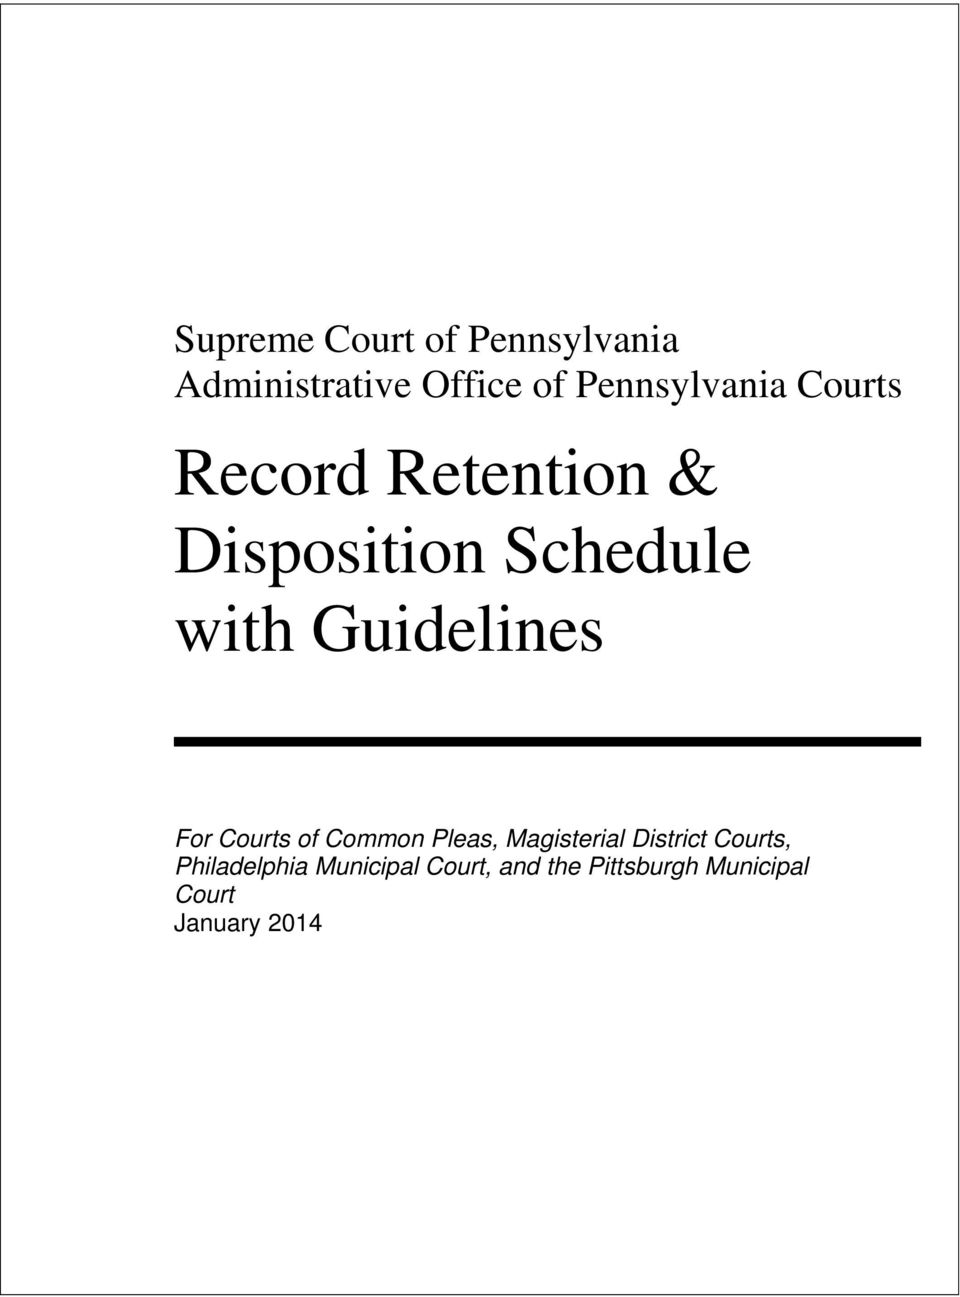 Guidelines For Courts of Common Pleas, Magisterial District